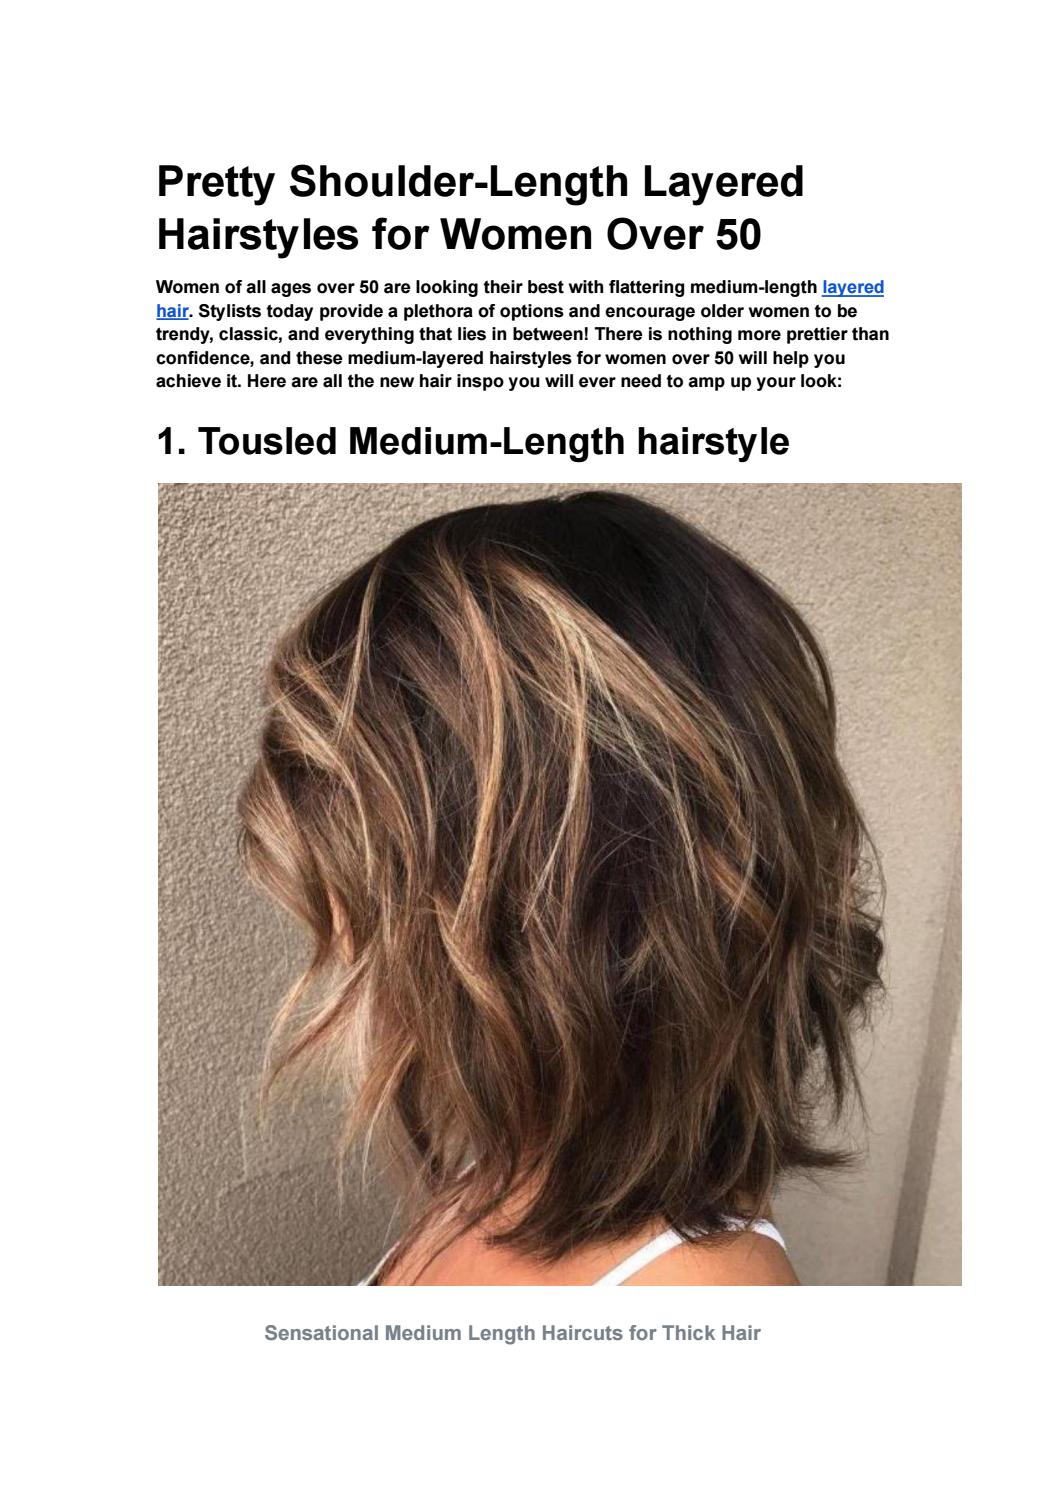 Pretty Shoulder-Length Layered Hairstyles for Women Over 4 by